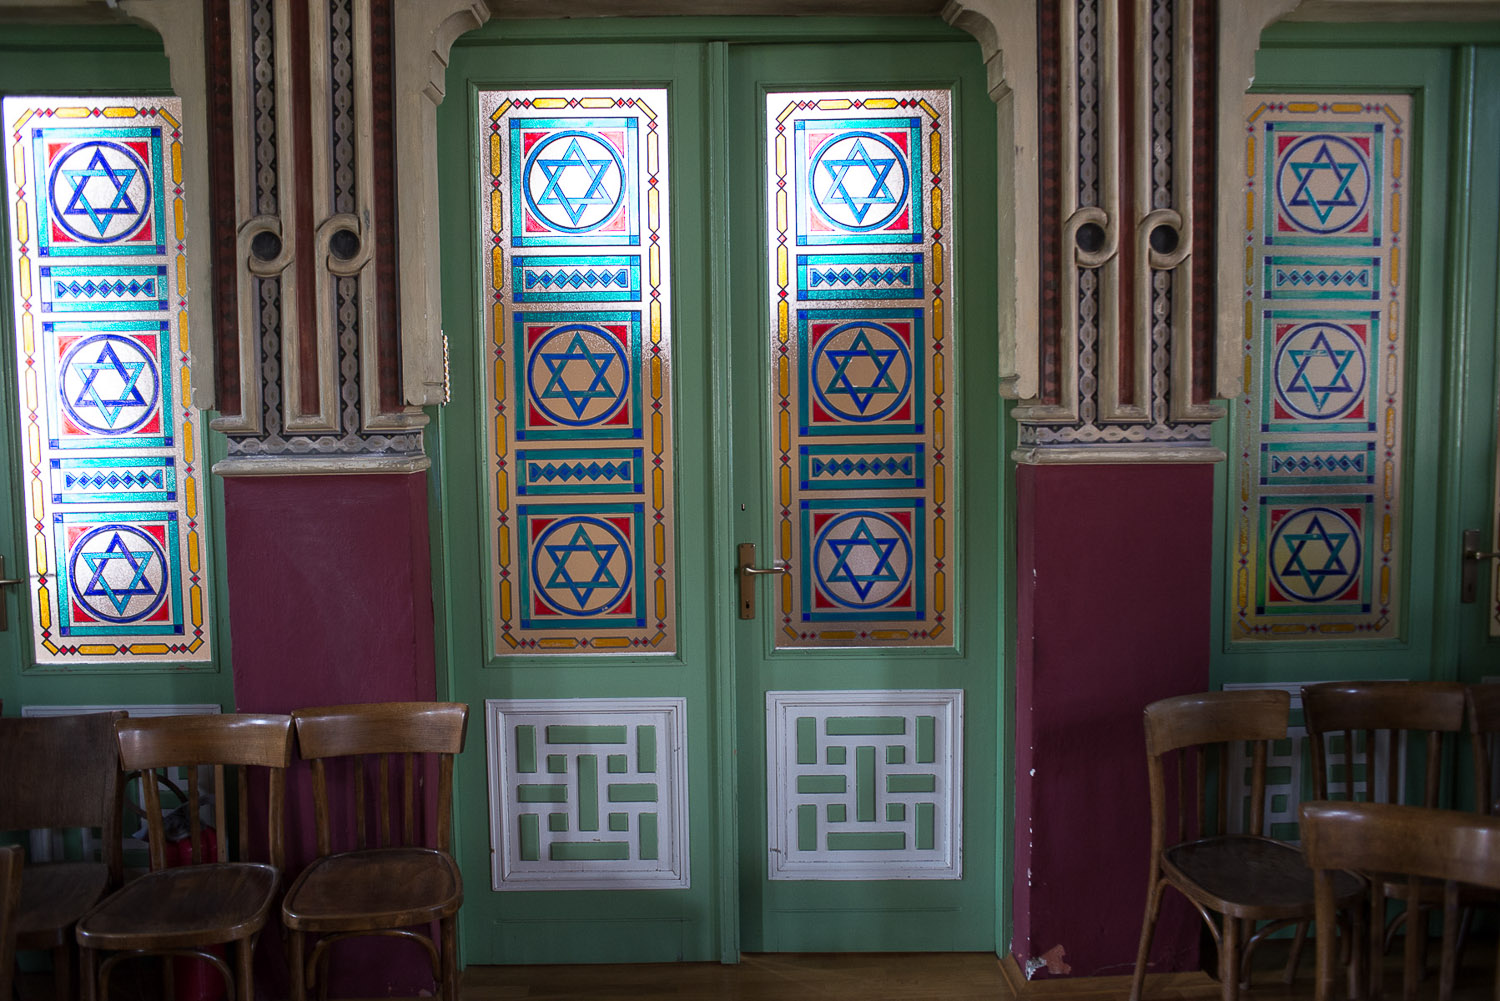 The Ashkenazi Synagogue in Sarajevo is entirely hand painted in traditional designs. The Synagogue holds services every Friday night except during the summer months when many congregation members are out of town.